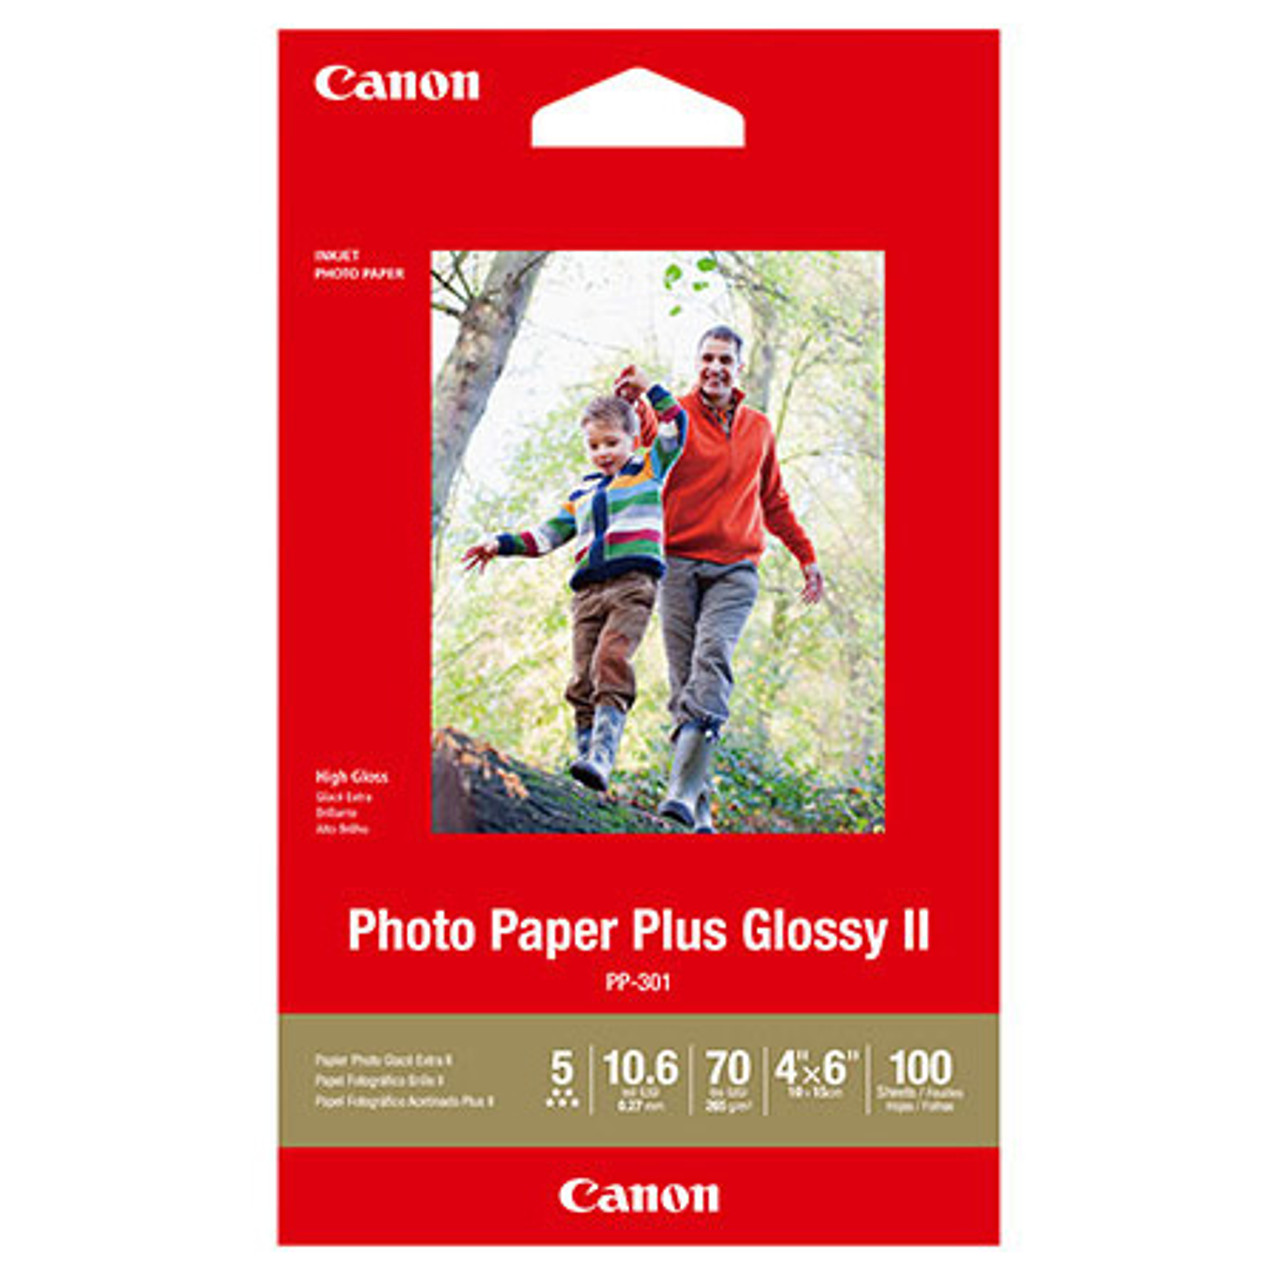 CANON PHOTO PAPER PLUS GLOSSY II (4X6 - 100 SHEETS)